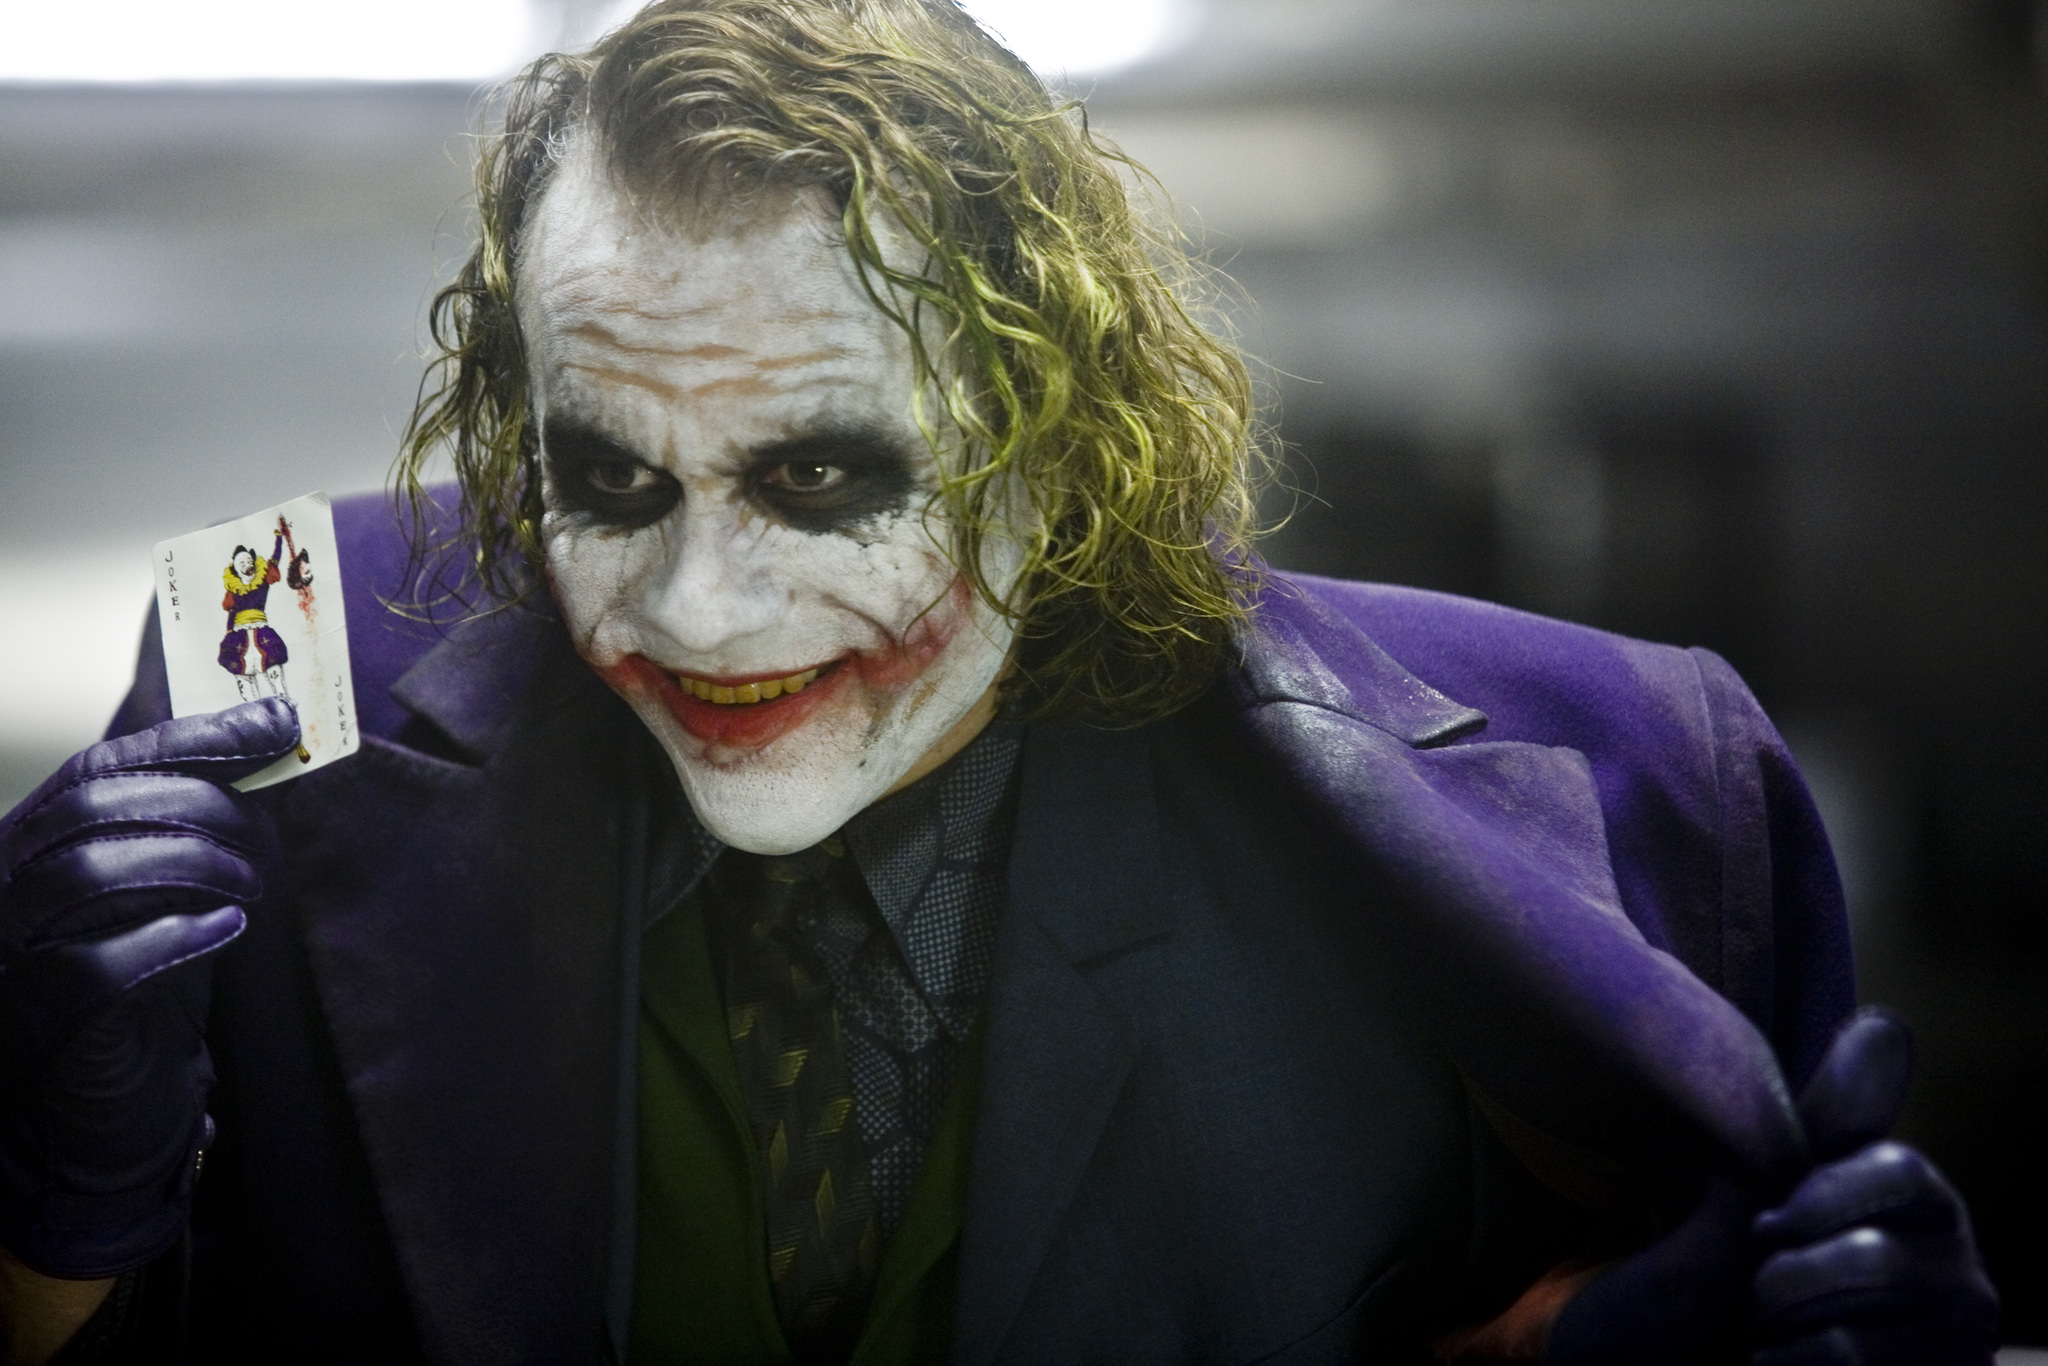 Heath Ledger in DC's The Dark Knight (2008)